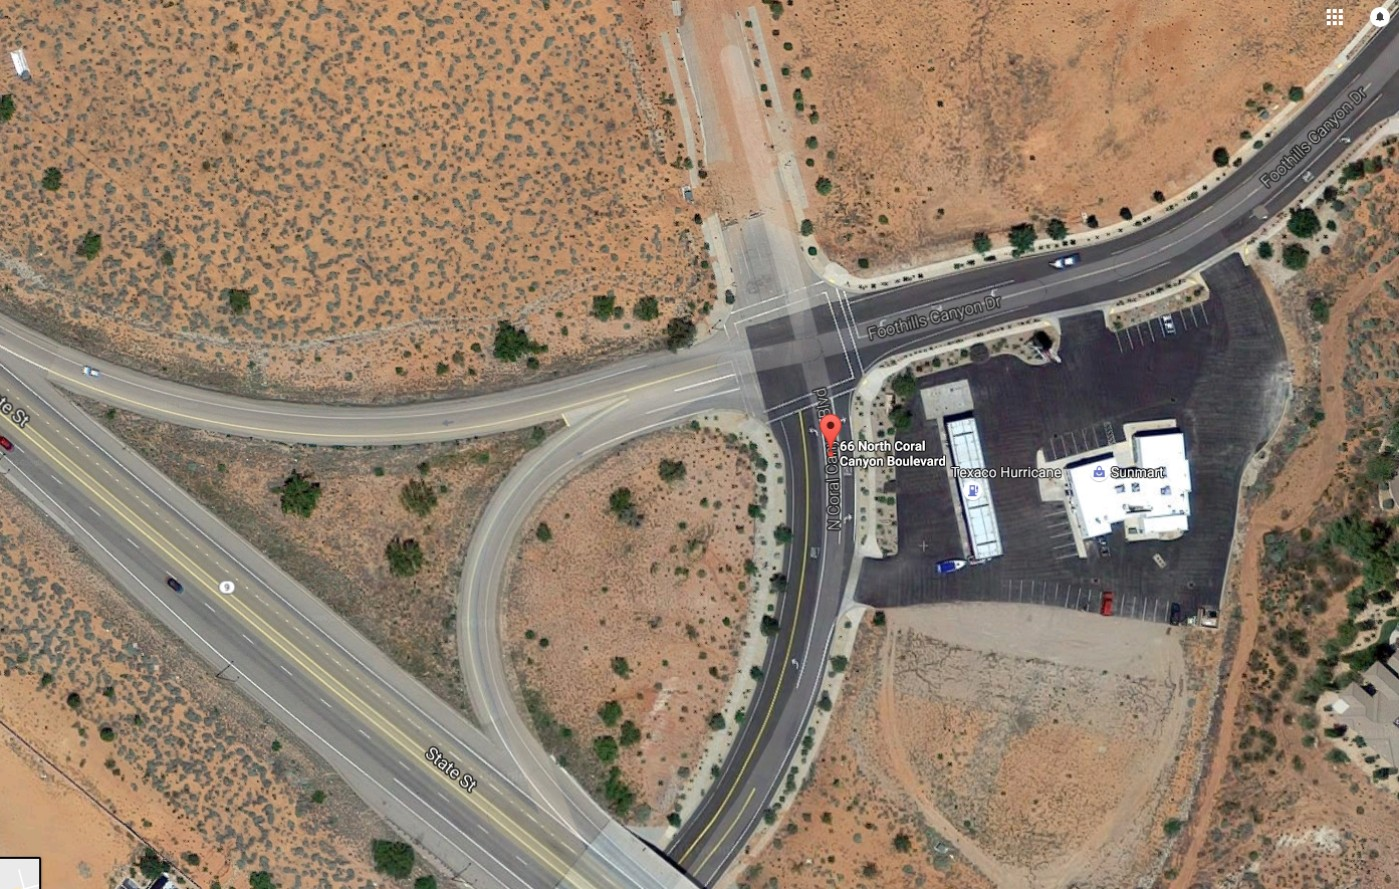 General location of a new fire station that will be jointly-run by the Washington City Fire Department and Hurricane Valley Fire Special Services District. | Image courtesy of Google Maps, St. George News